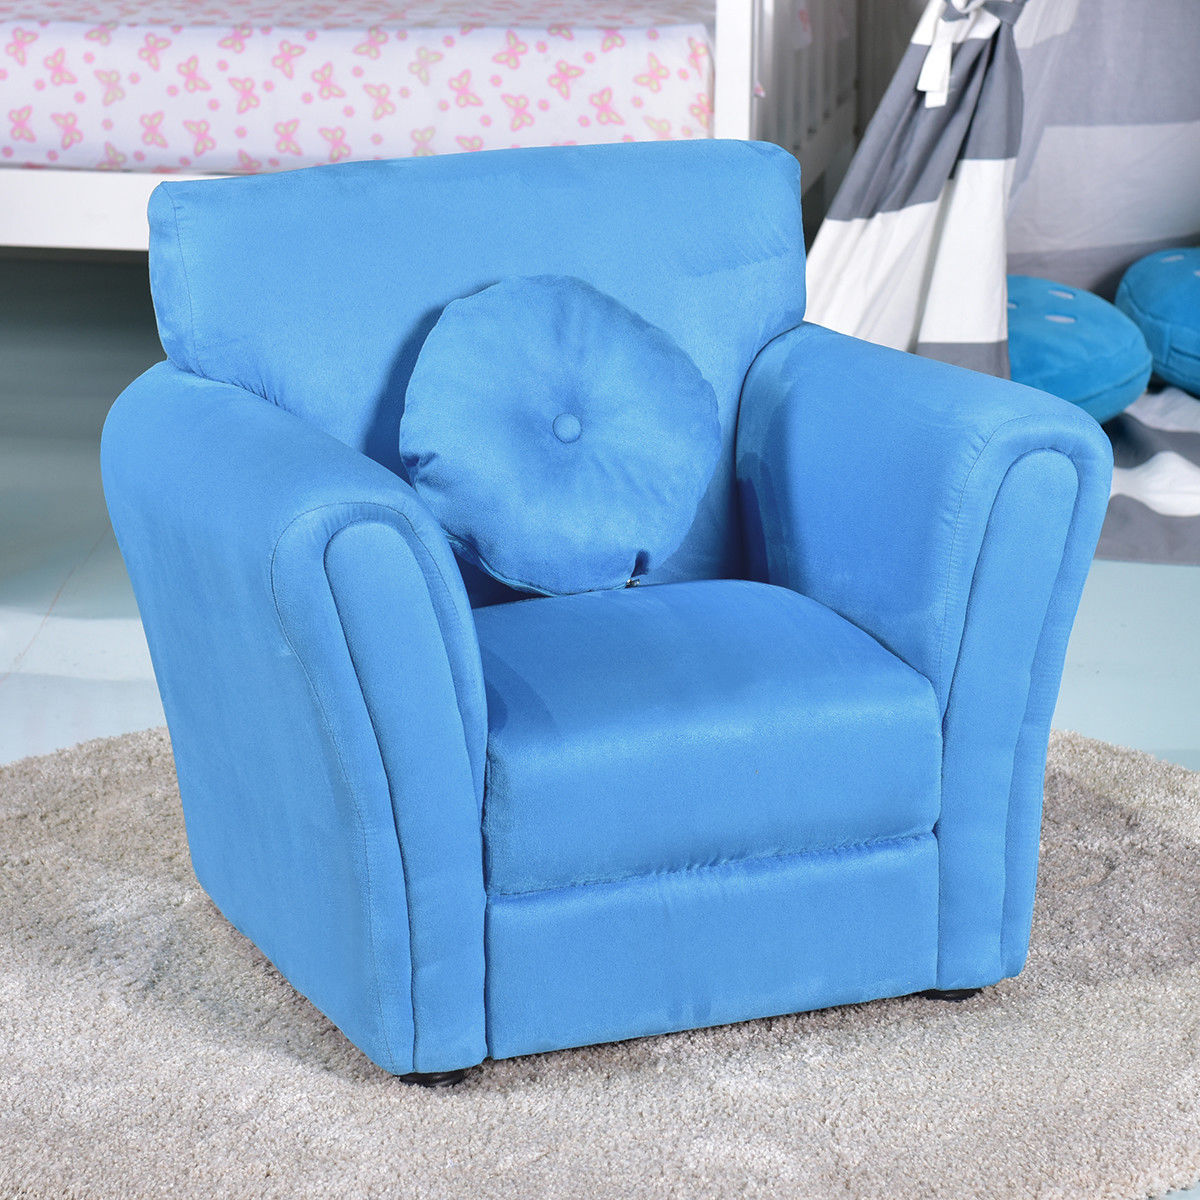 Living Room Armrest Chair Couch Kids Sofa w/ Pillow-Blue